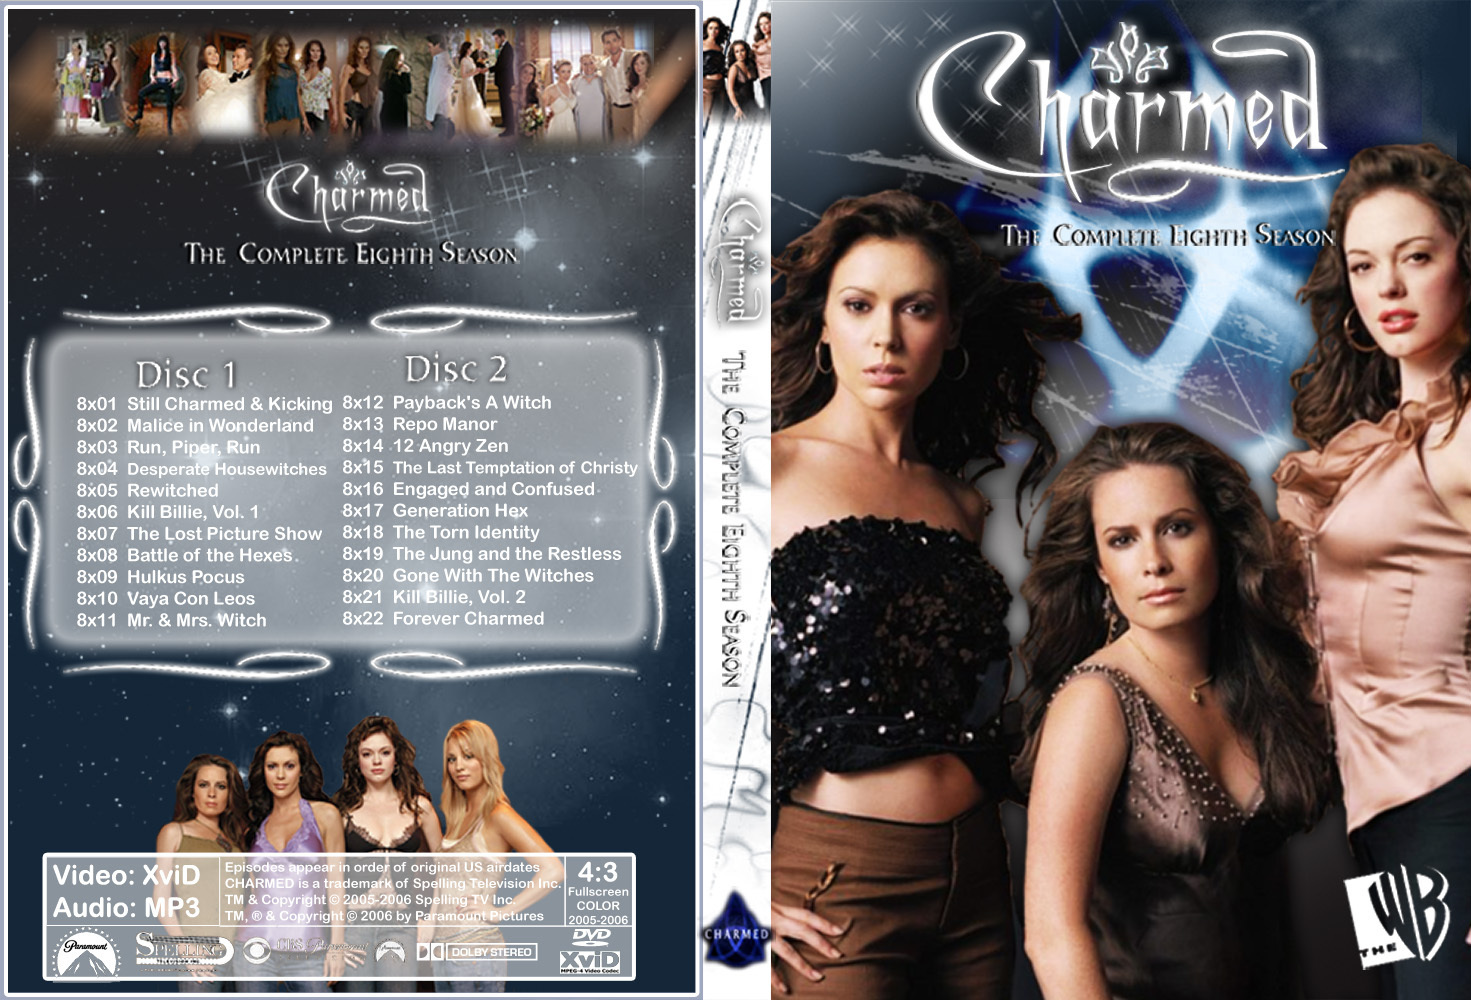 charmed Season 8 Dvd Cover Made oleh Chibiboi